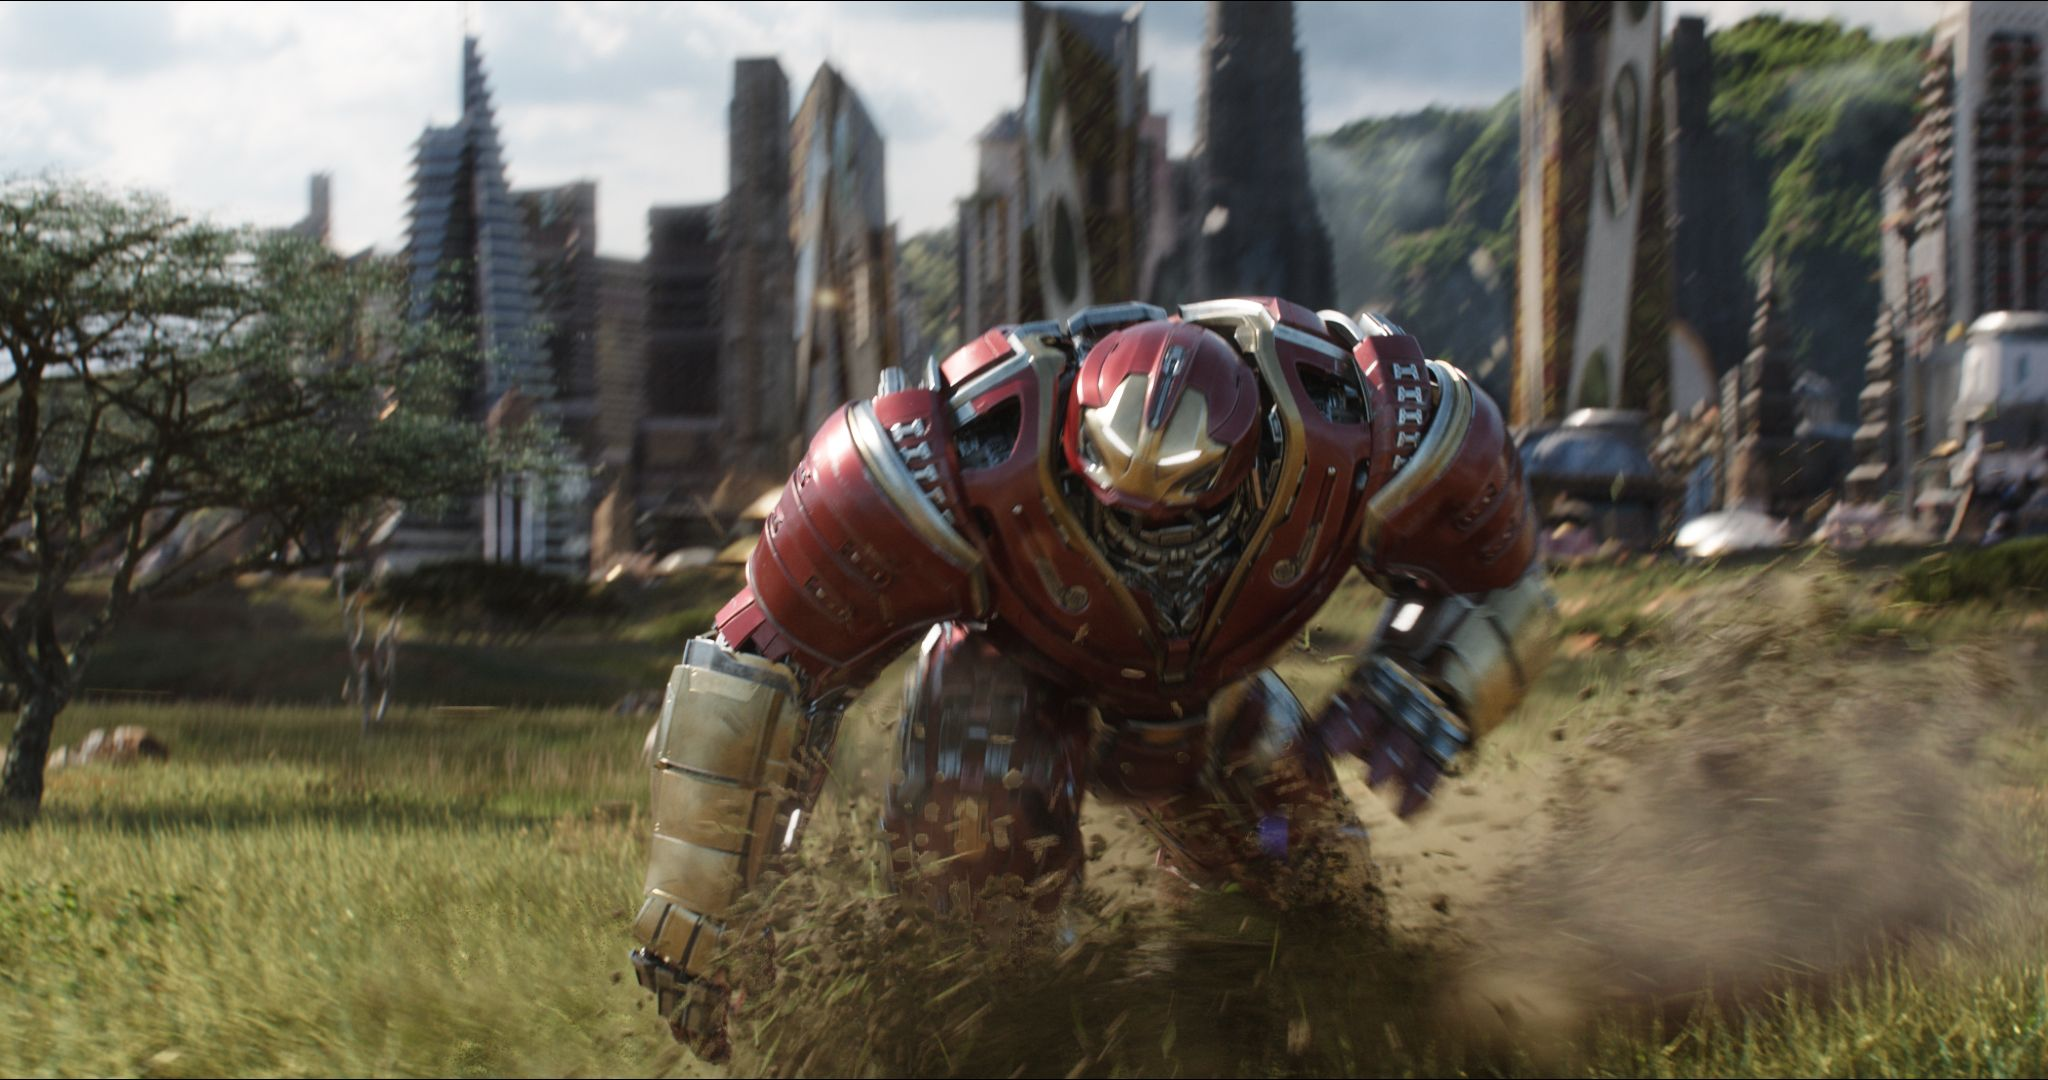 Avengers: Infinity War: 15 High-Res Images Tease the Battle